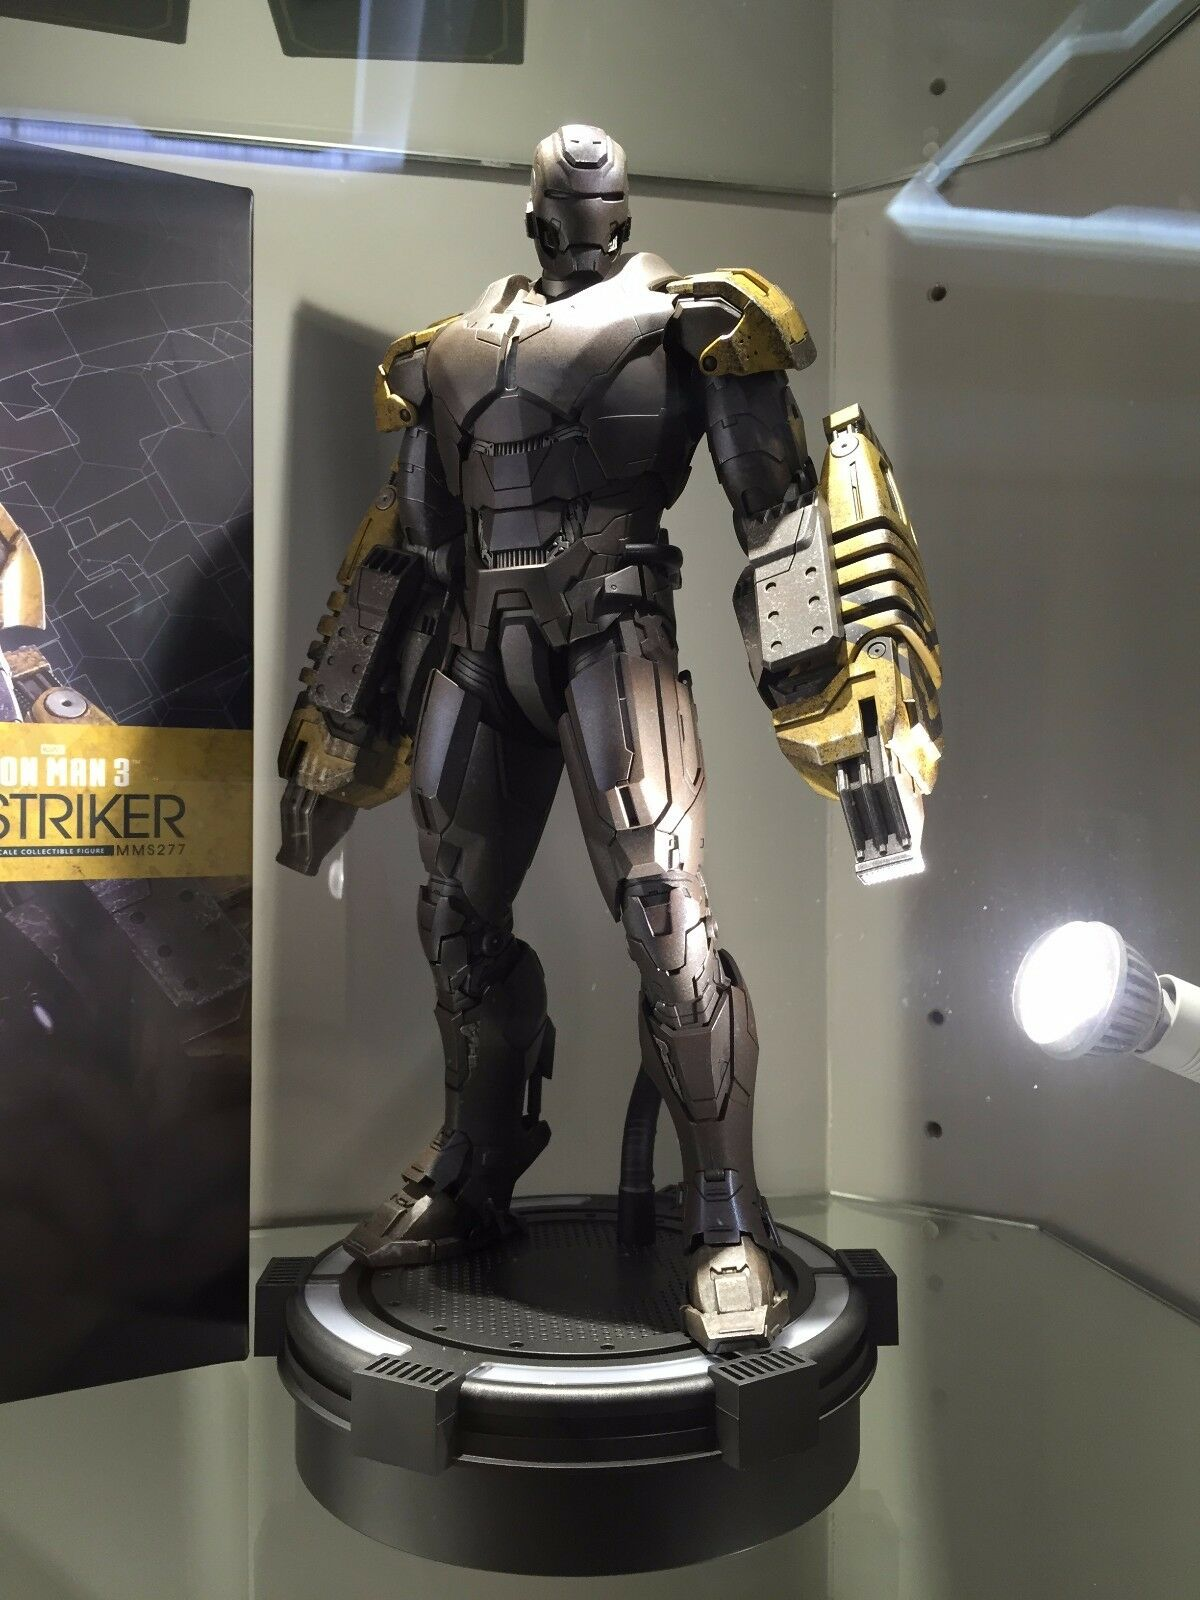 Iron Man Striker Hot Toys Mark 25 Side Show Action Figure Mms277 Ebay